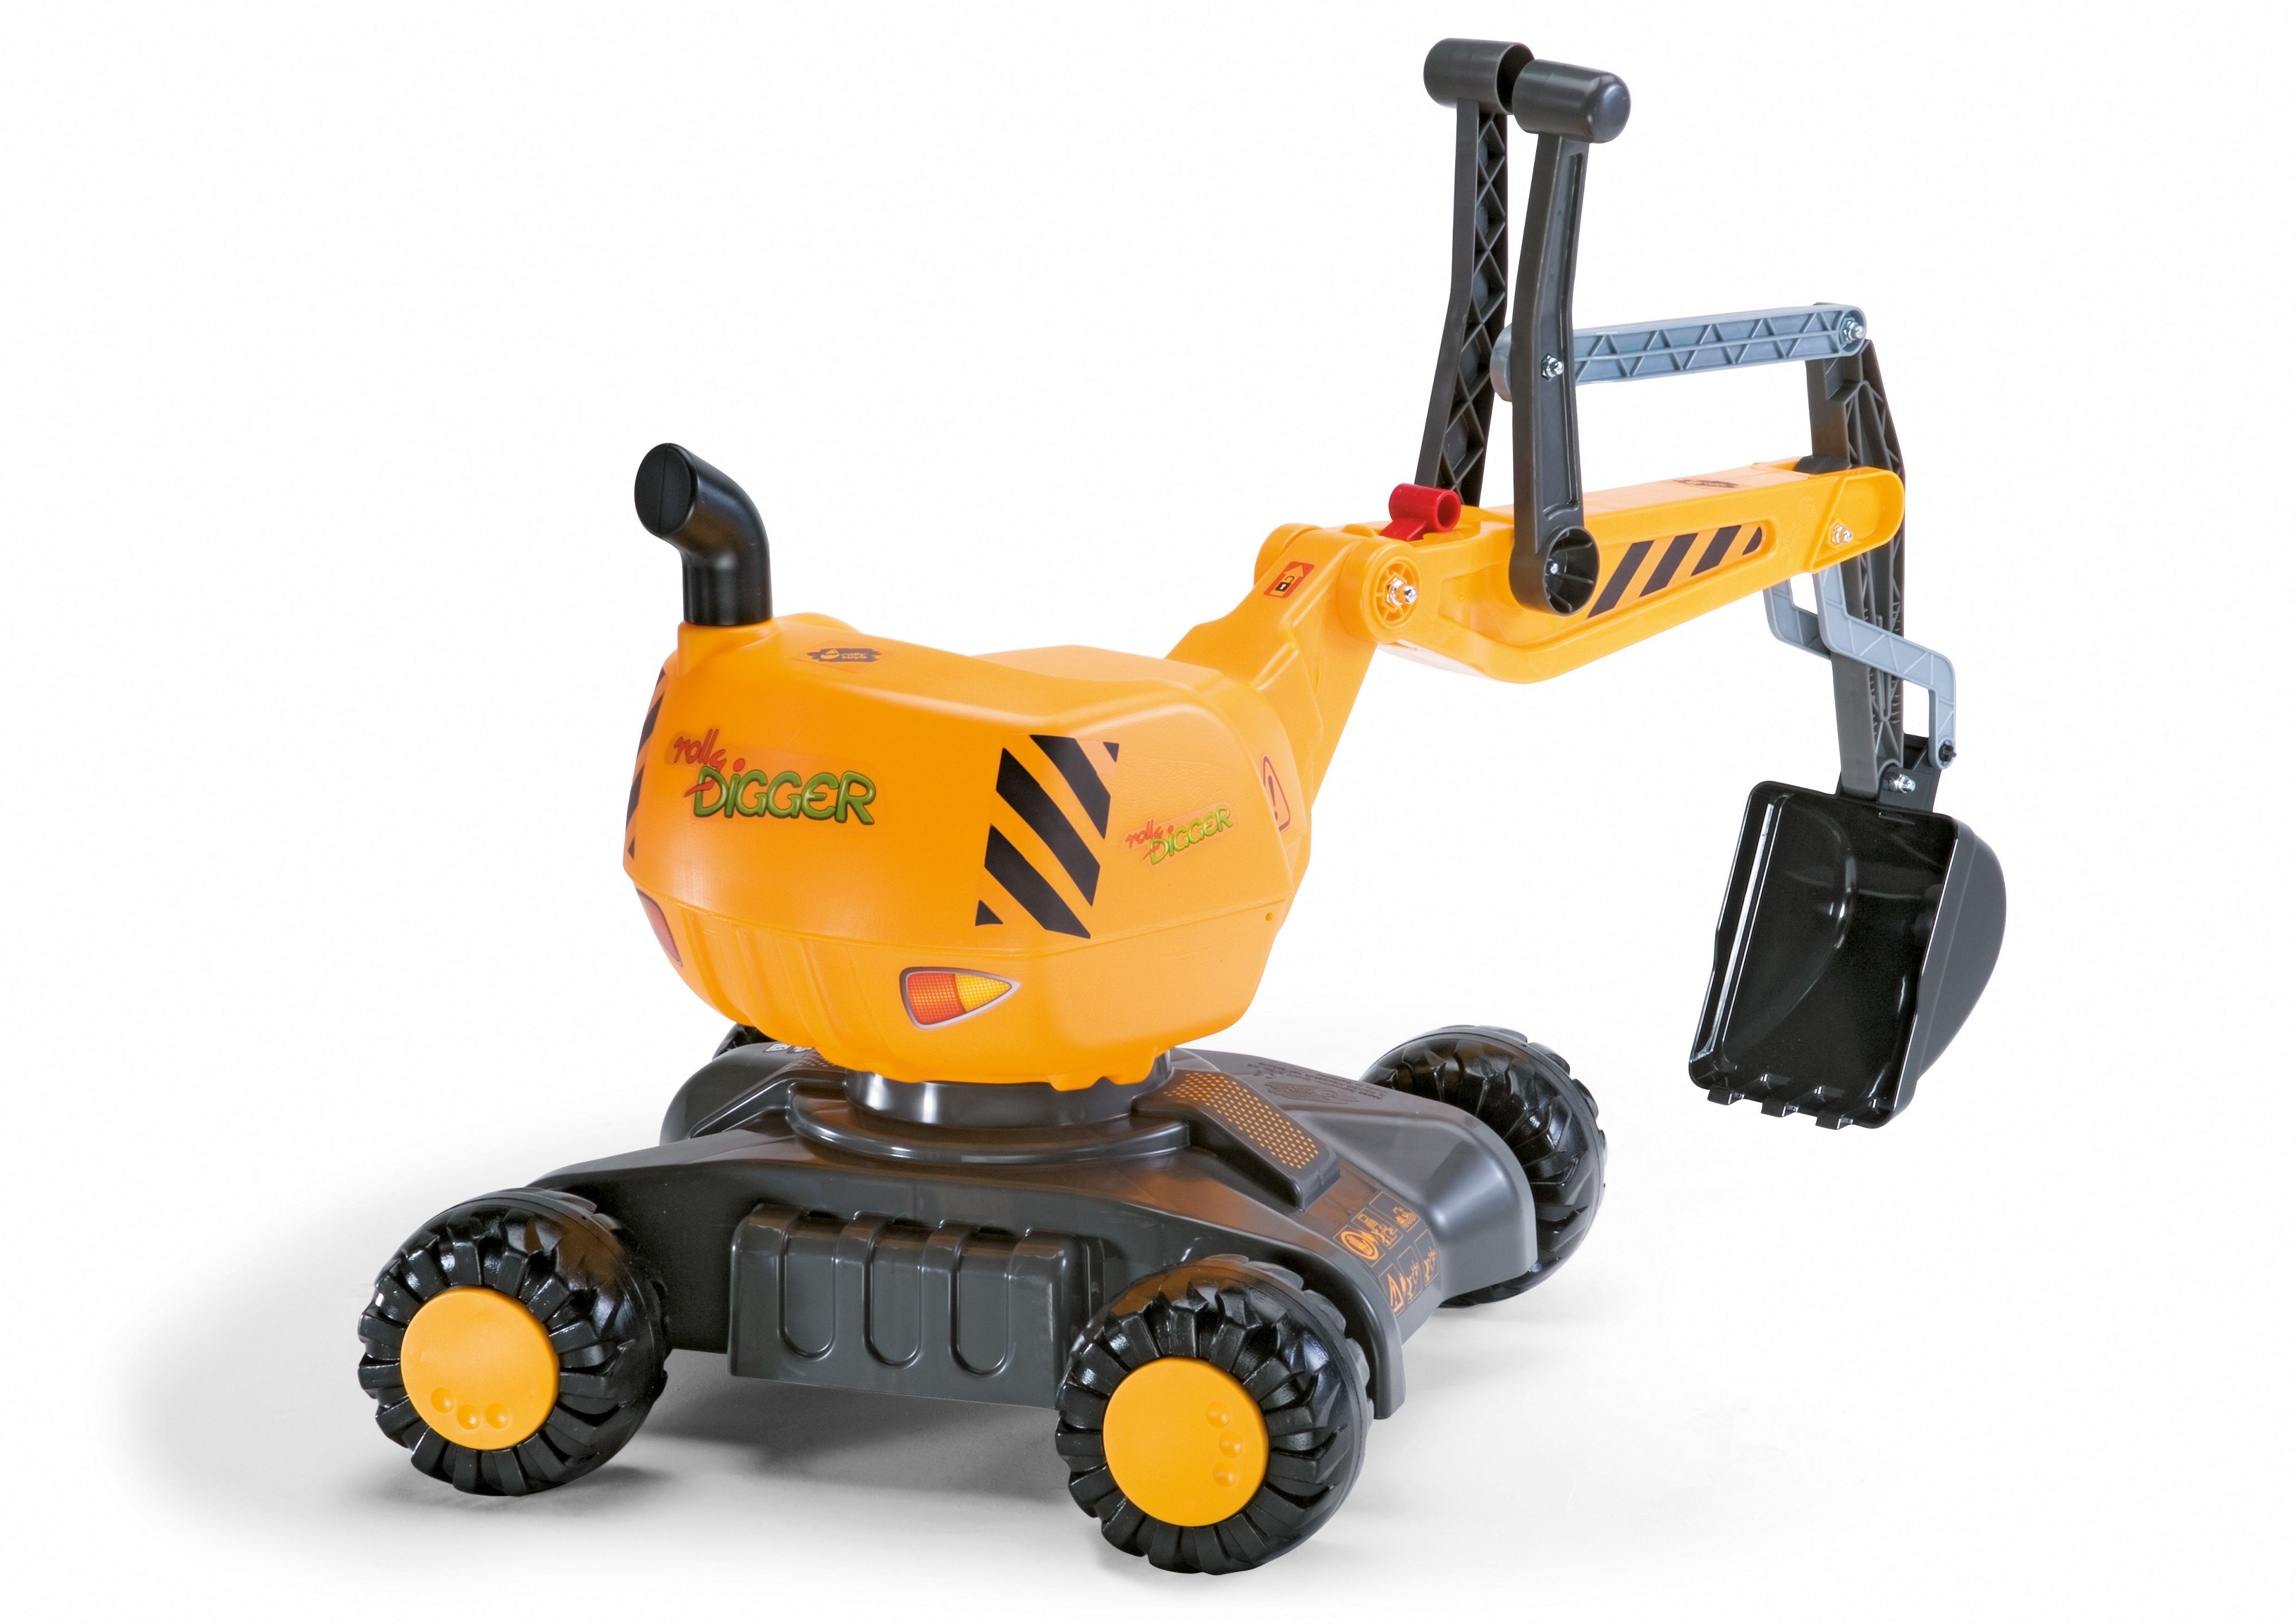 Mobile 360 Degree Excavator